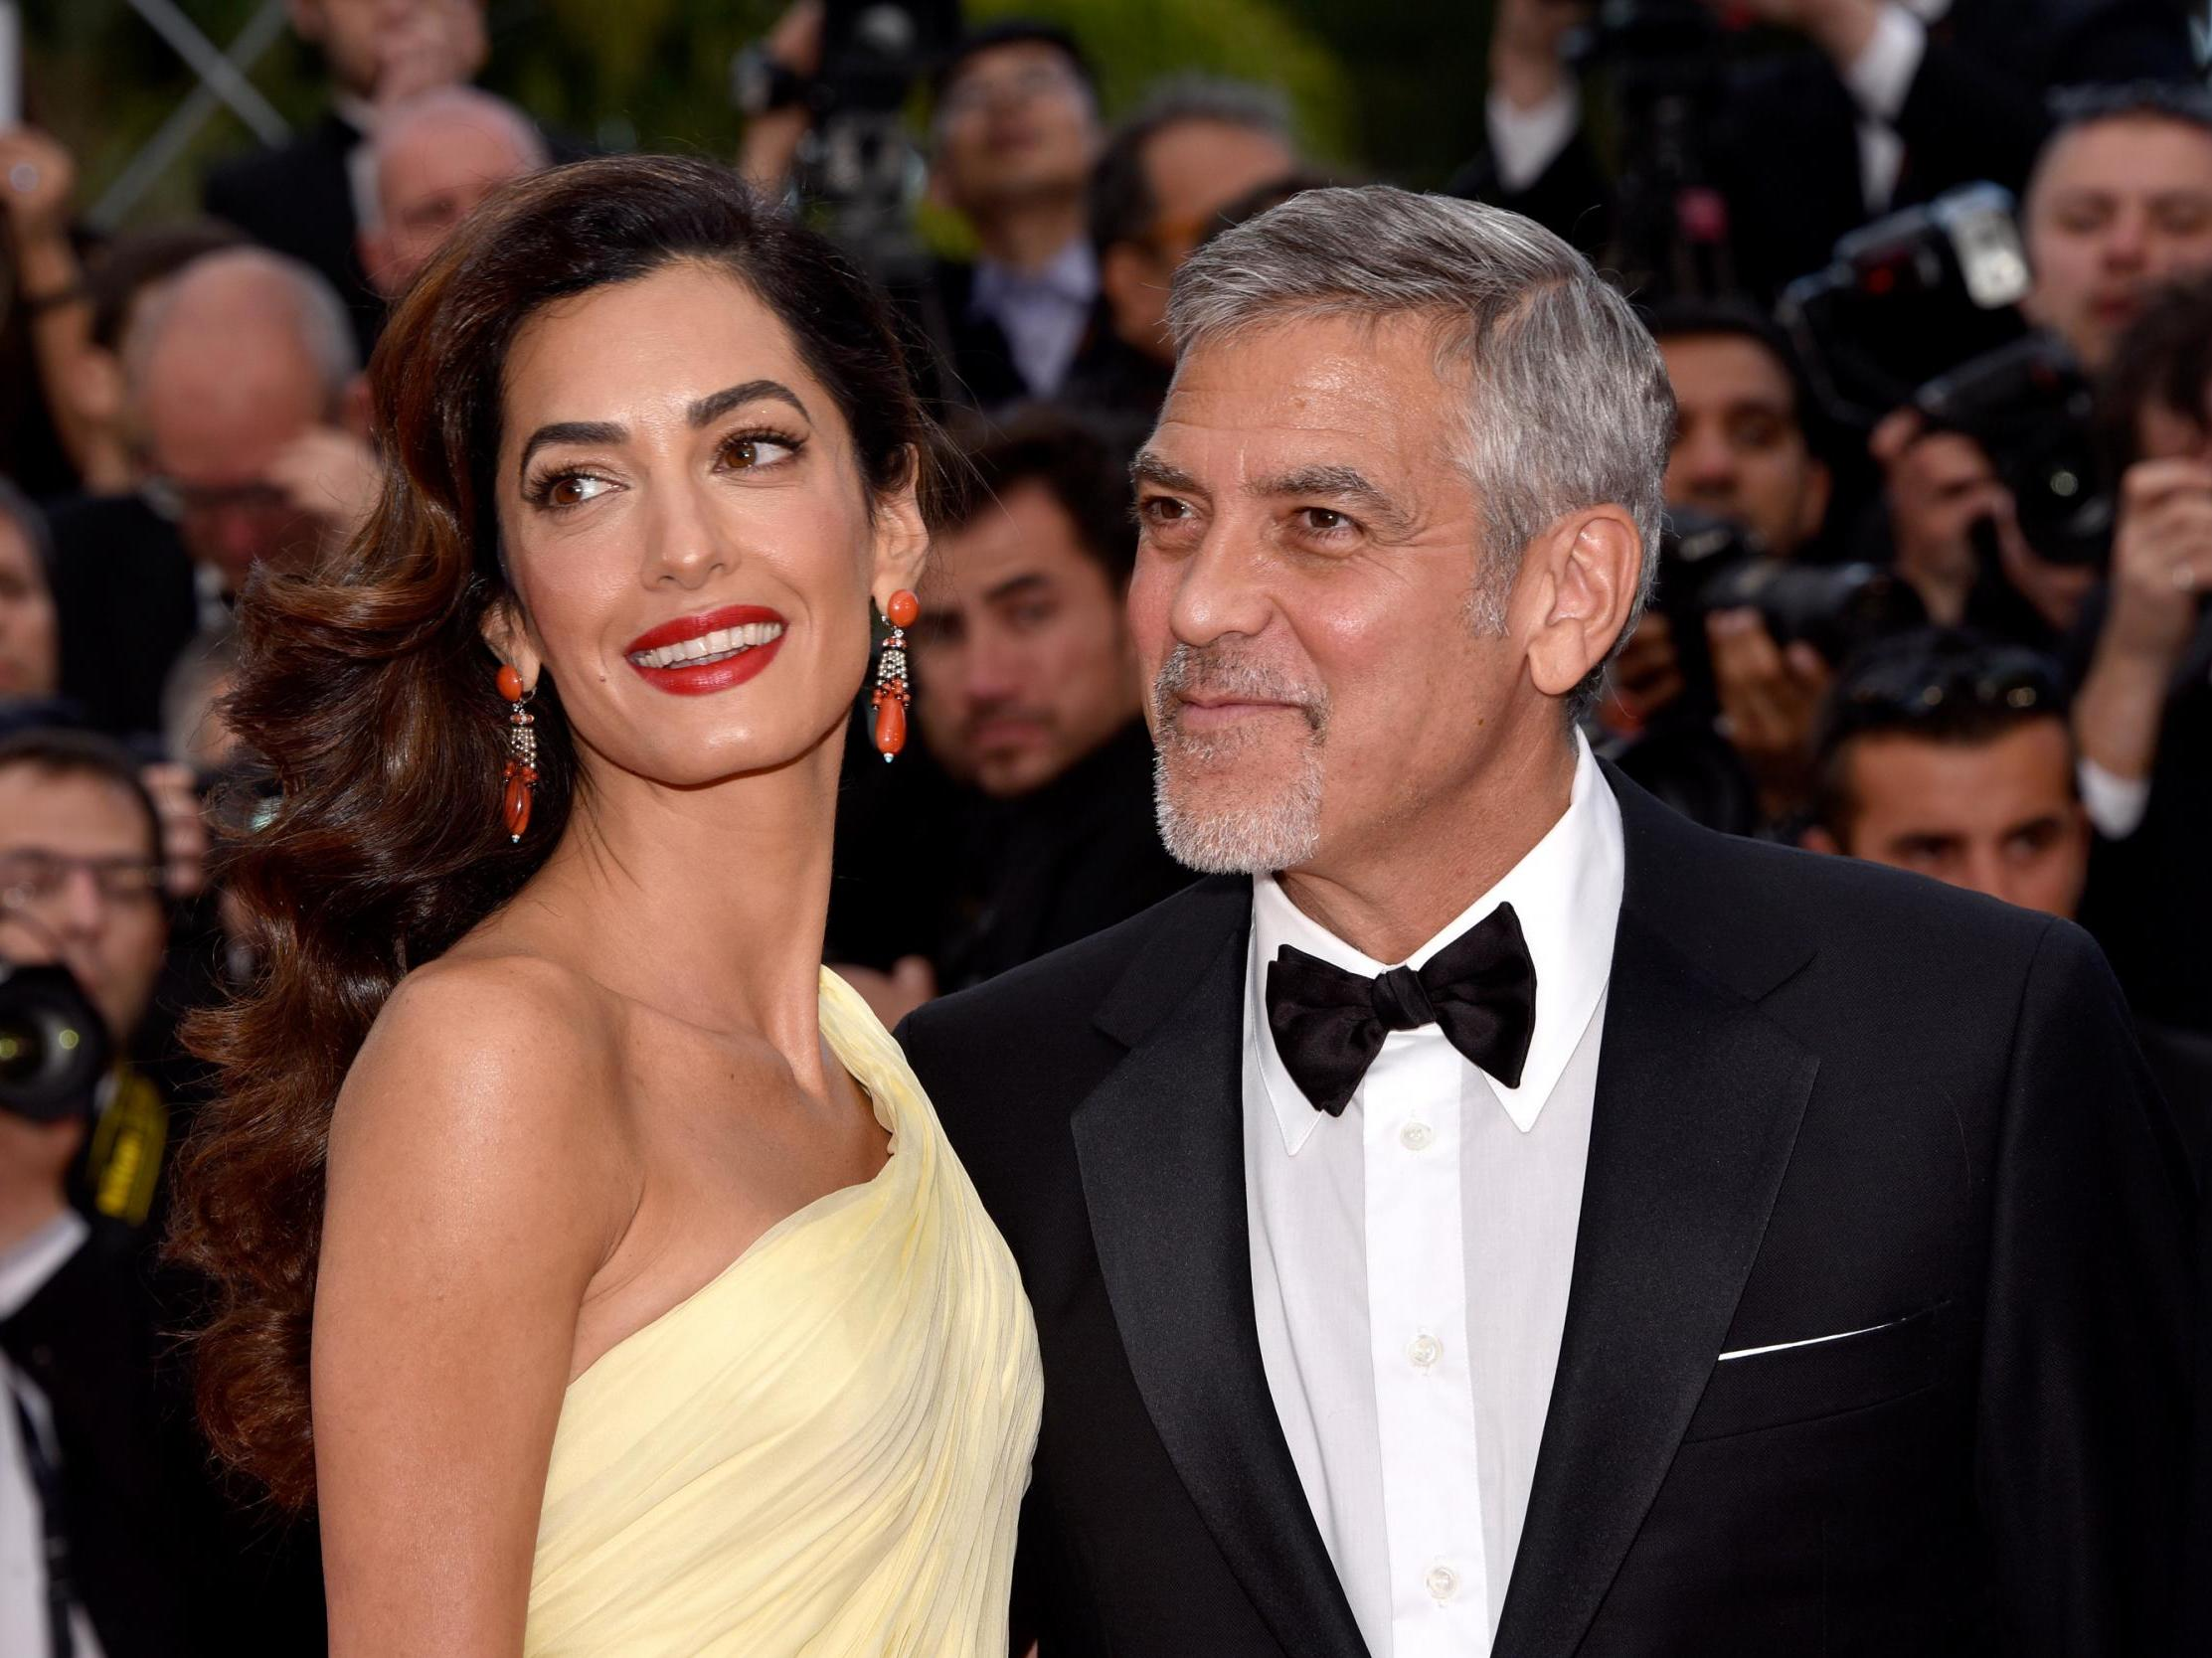 Amal Clooney - latest news, breaking stories and comment